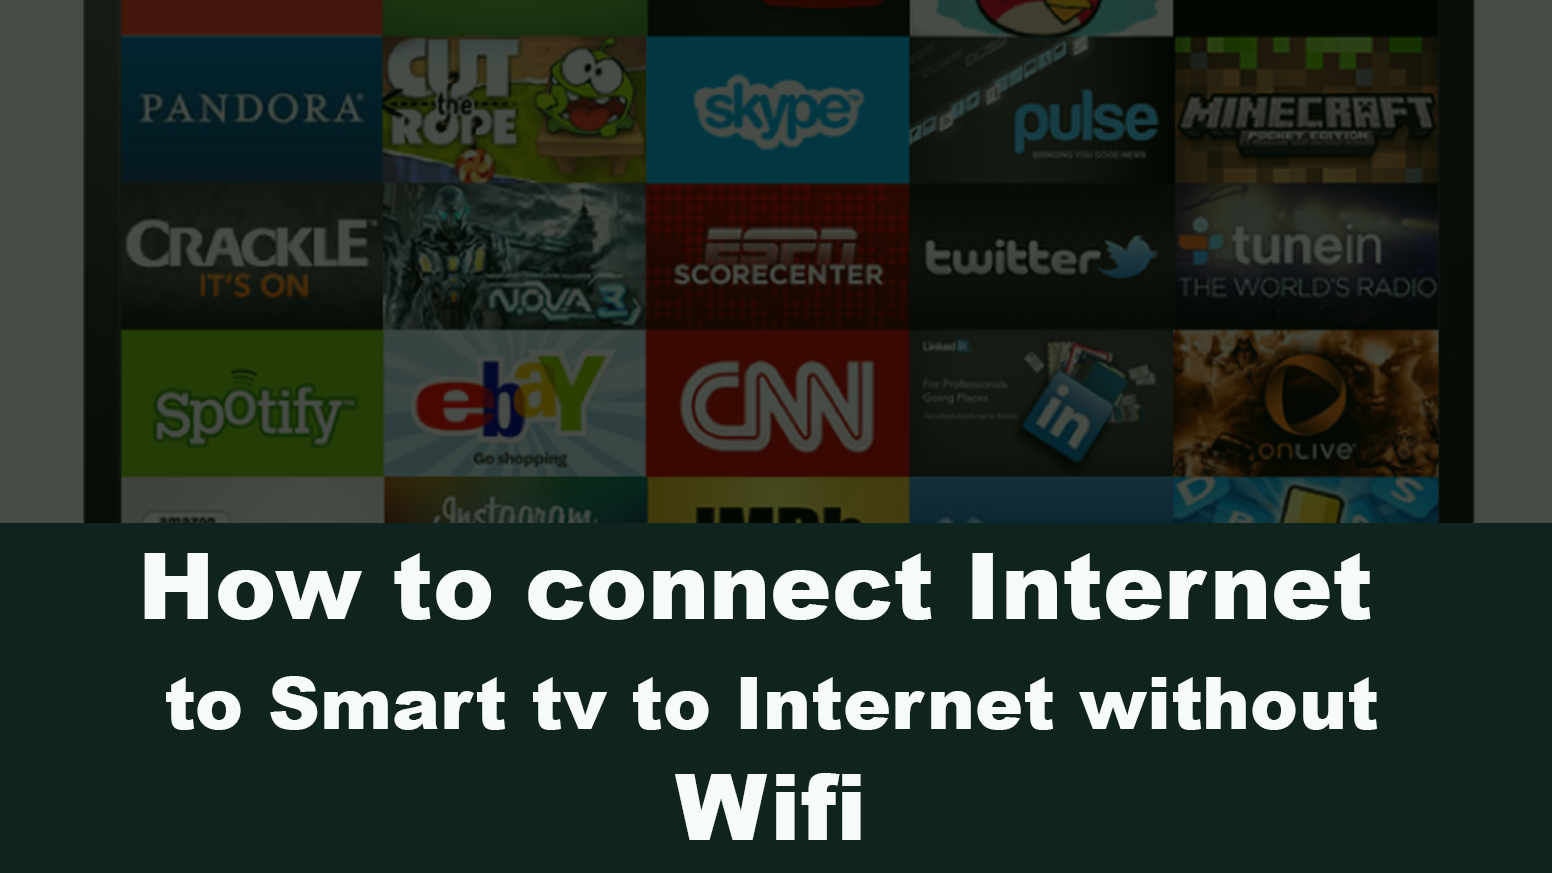 How to connect Internet TV